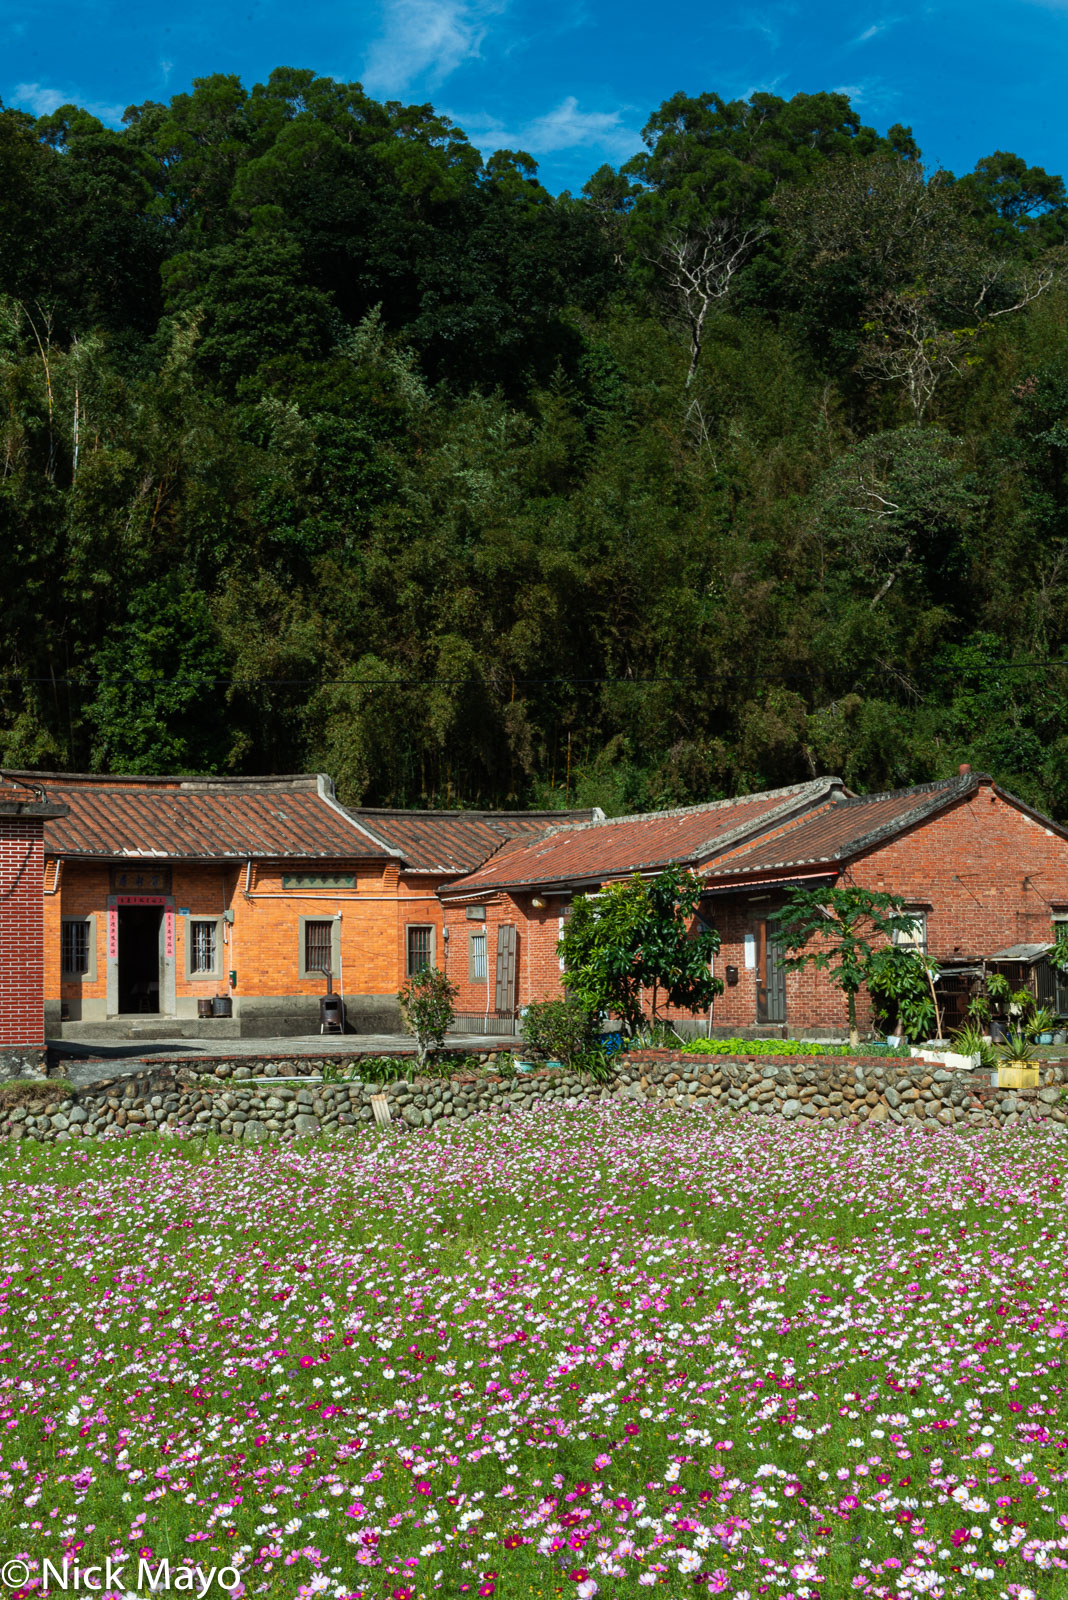 A three sided red brick farmhouse behind a field of flowers at Shanbi.